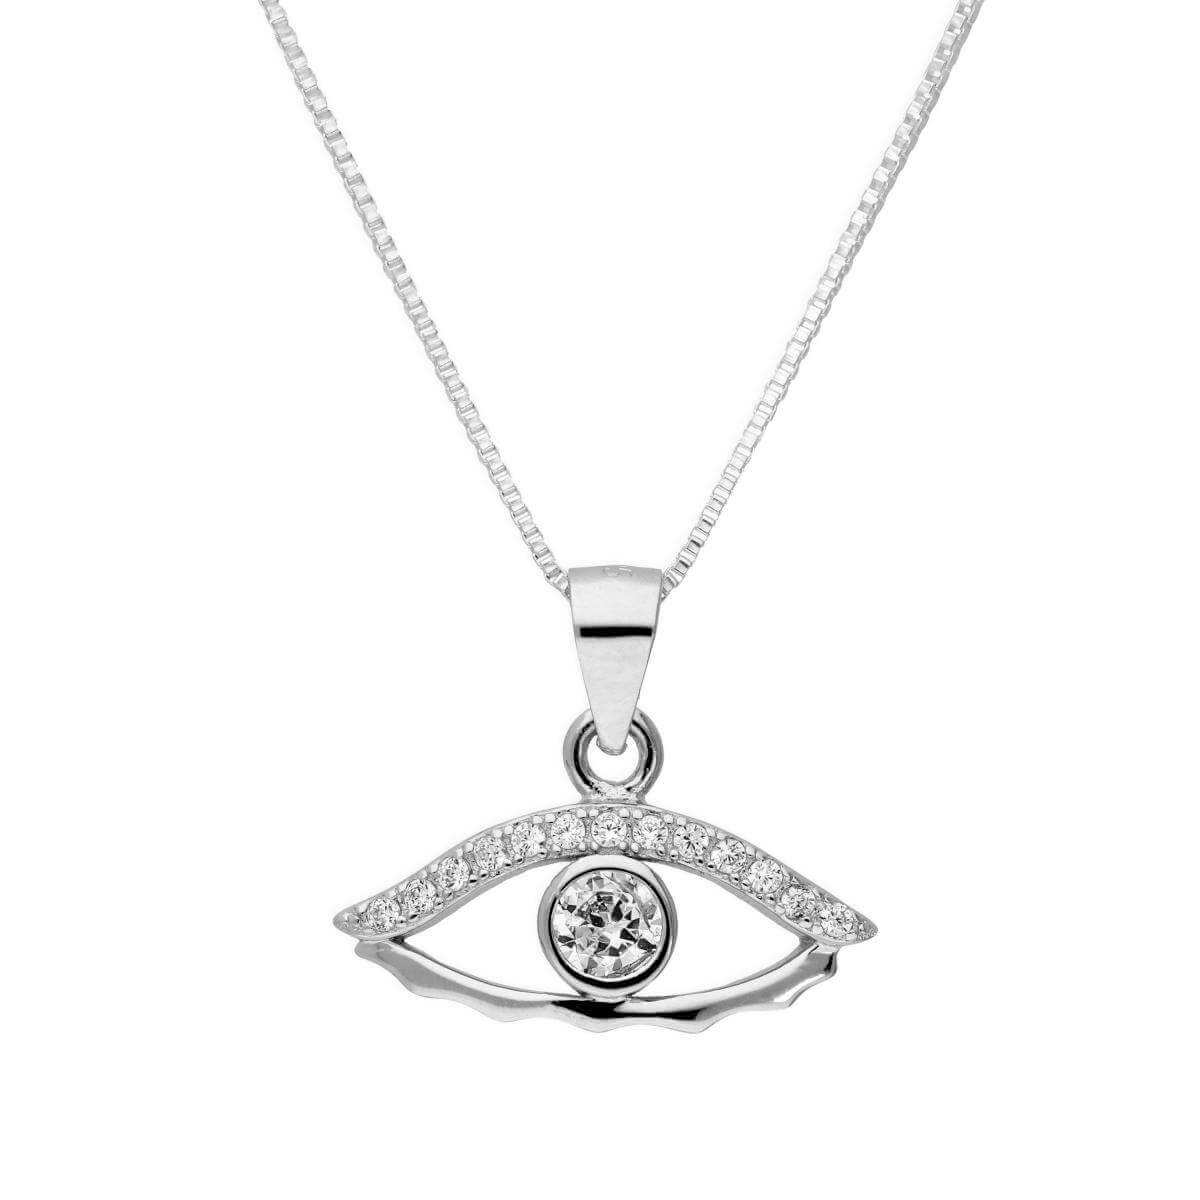 Sterling Silver & Clear CZ Crystal Evil Eye Pendant Necklace 16 - 22 Inches